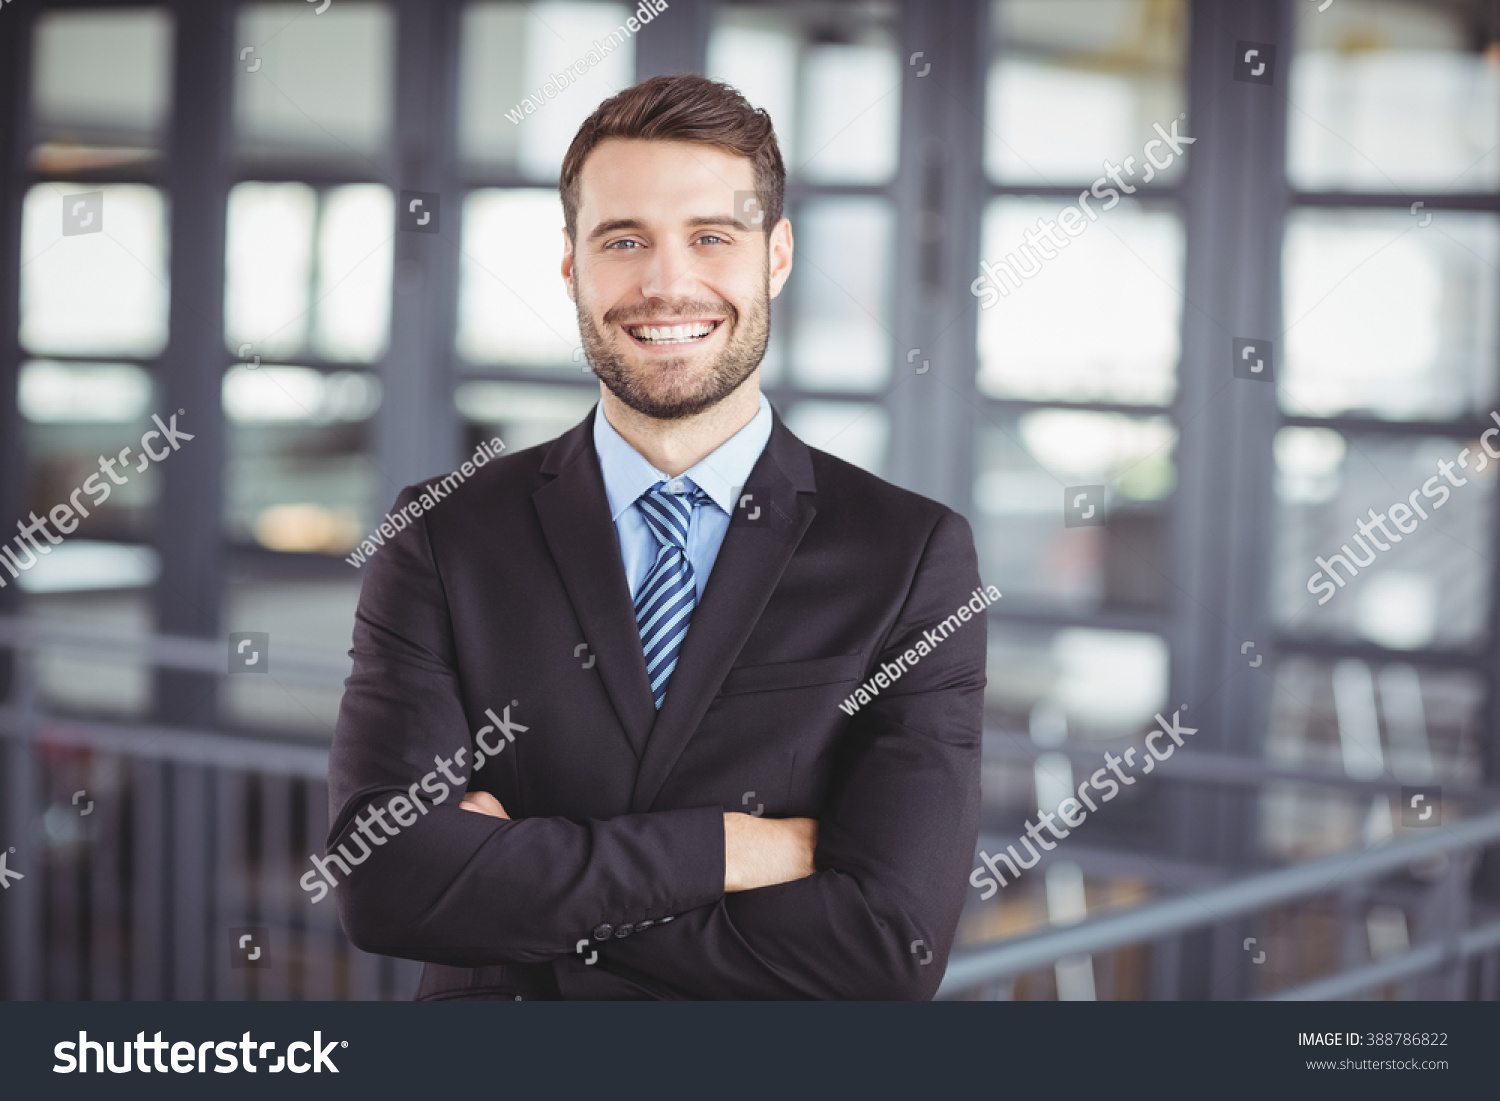 Portrait of happy businessman with arms crossed standing in office #388786822